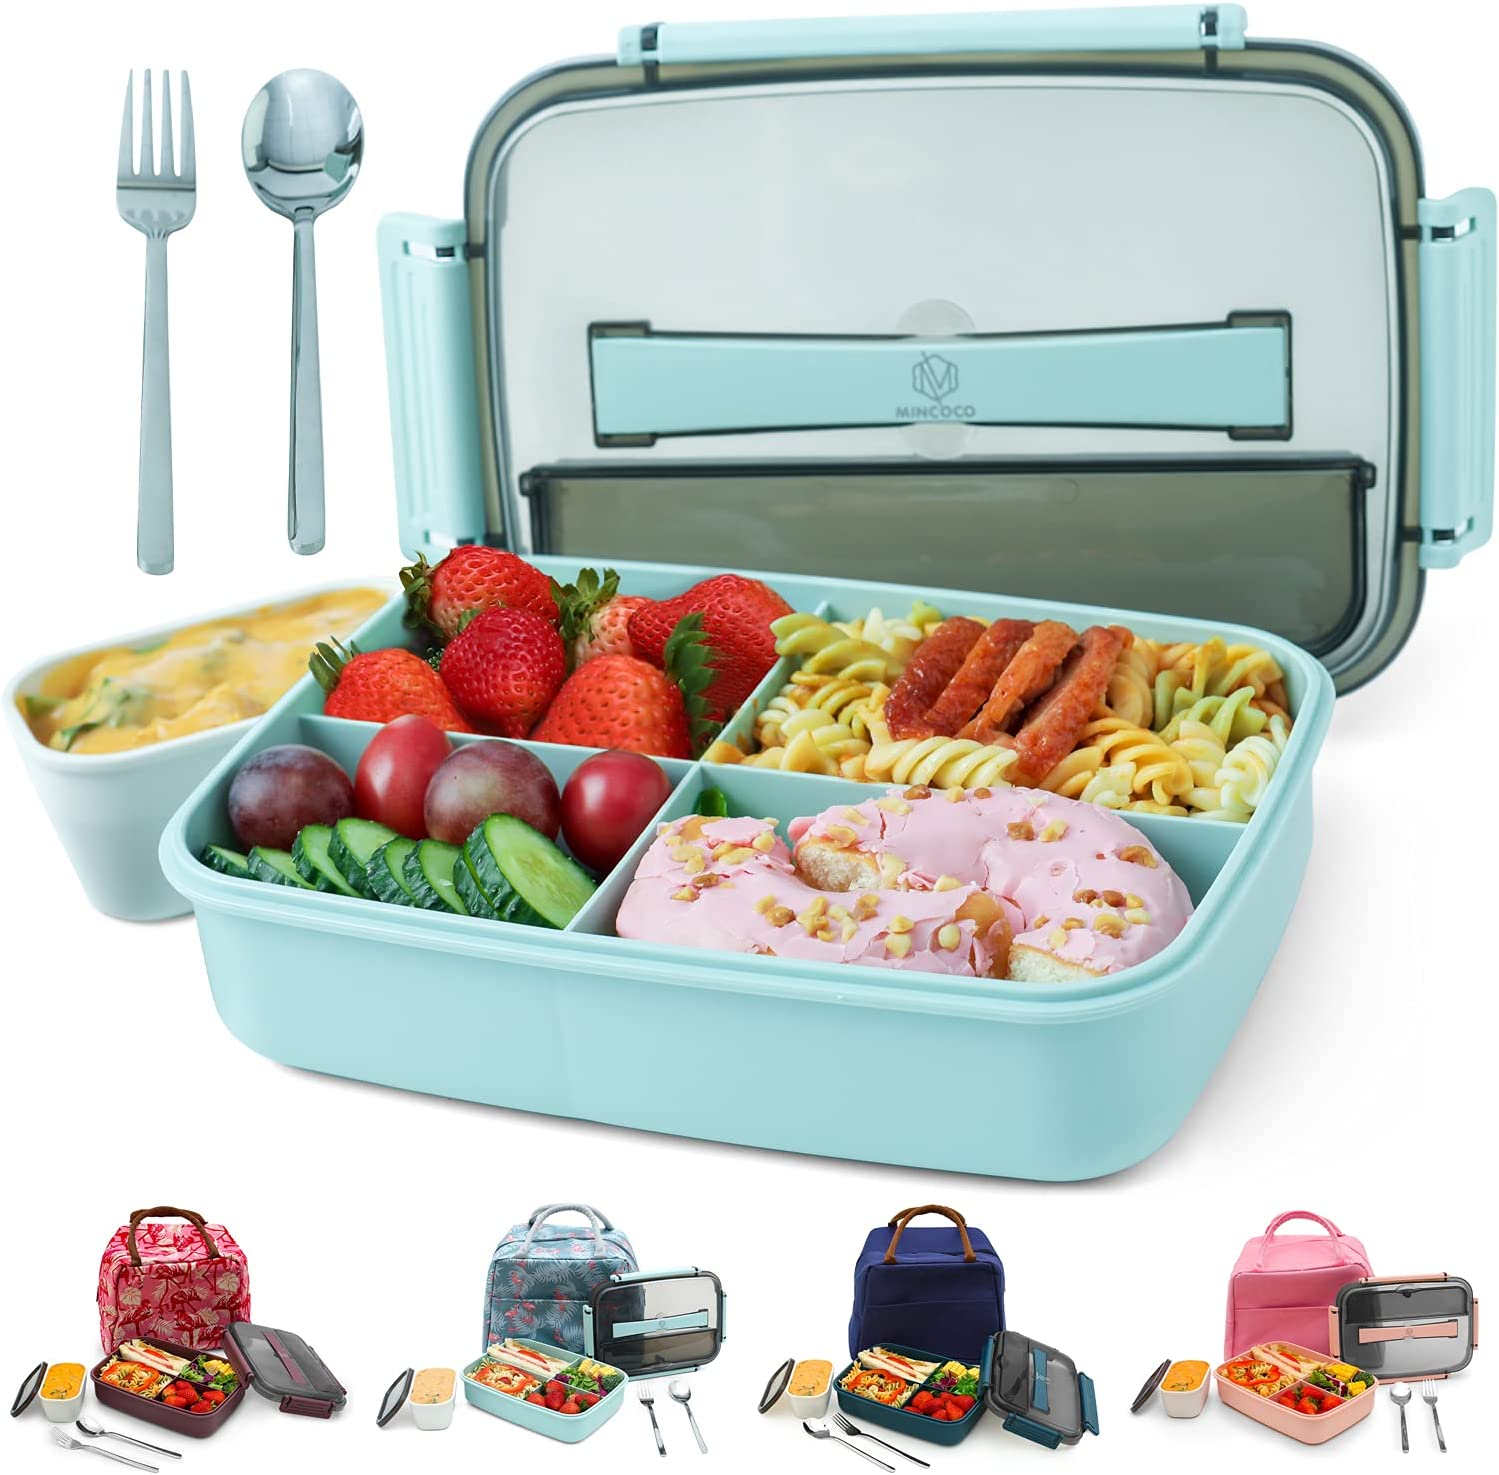 MINCOCO Bento Lunch Box Leak-proof Eco-Friendly Bento Box Food Storage Containers with Sauce Jar and Stainless Spoon&Fork for Adults Women Men Kids